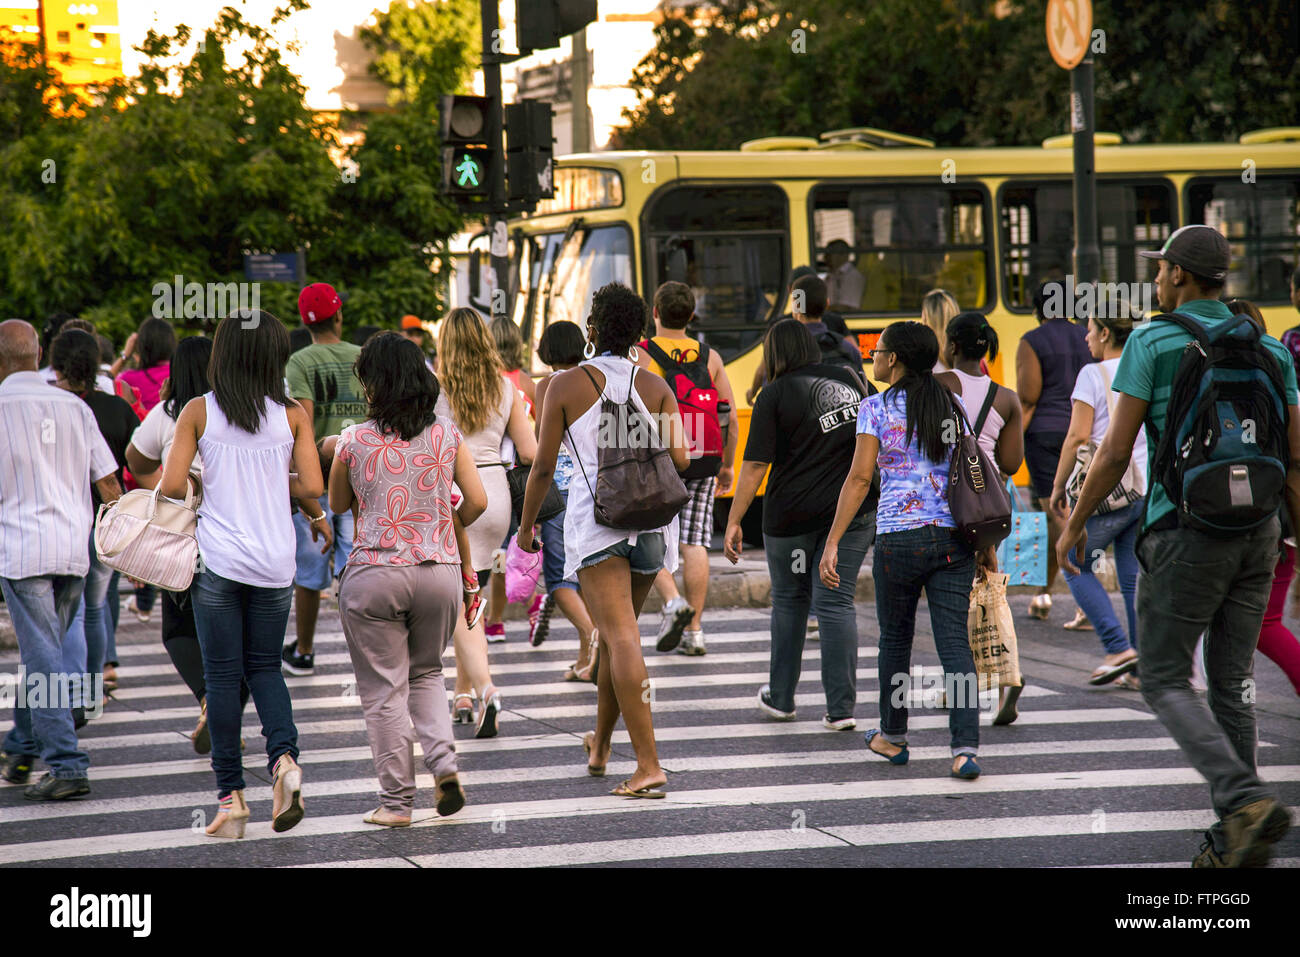 Pedestrian crossing the avenue Andradas - central region of the city - Stock Image